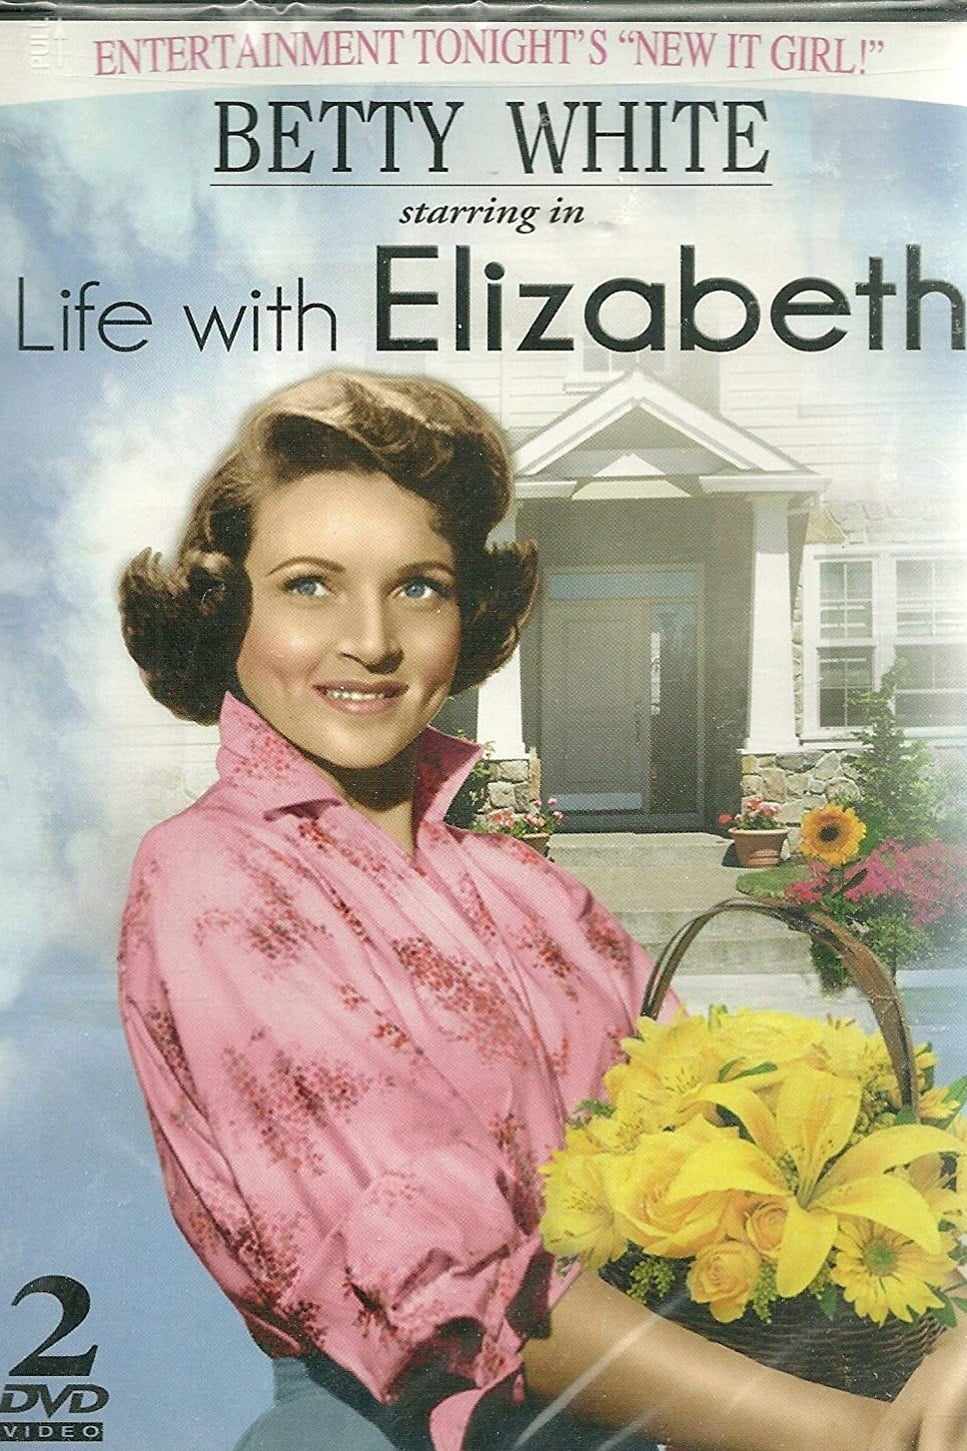 Life with Elizabeth on FREECABLE TV